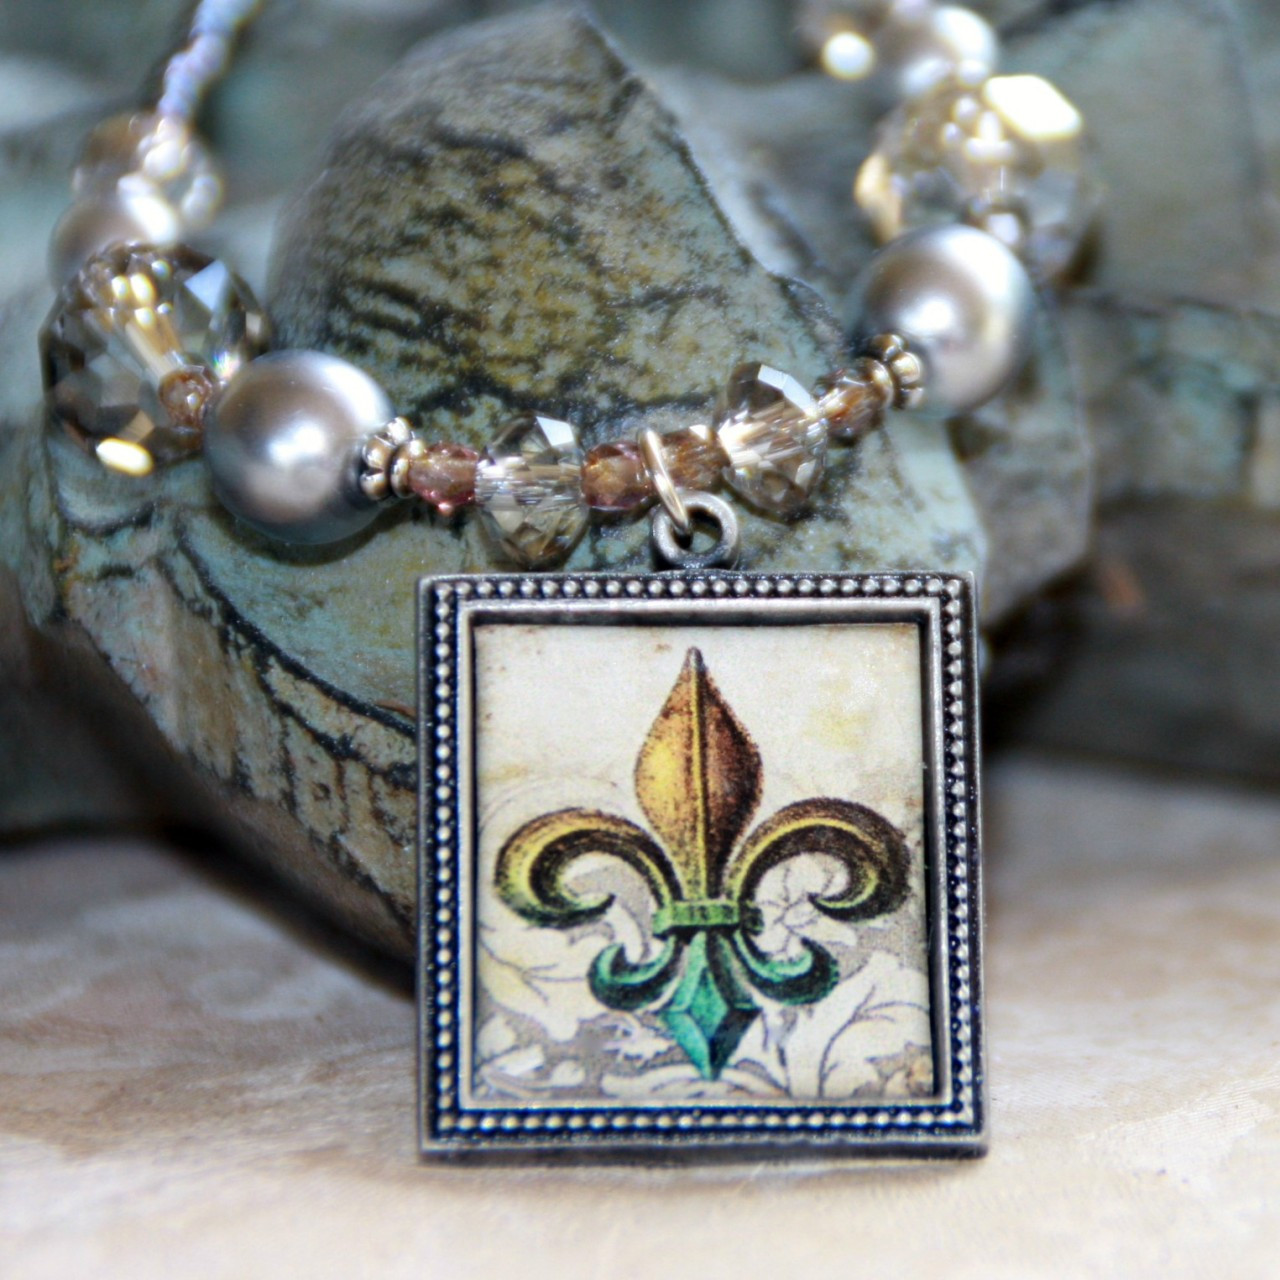 ART-217 WOW! Fleur de Lis ART Collection Necklace